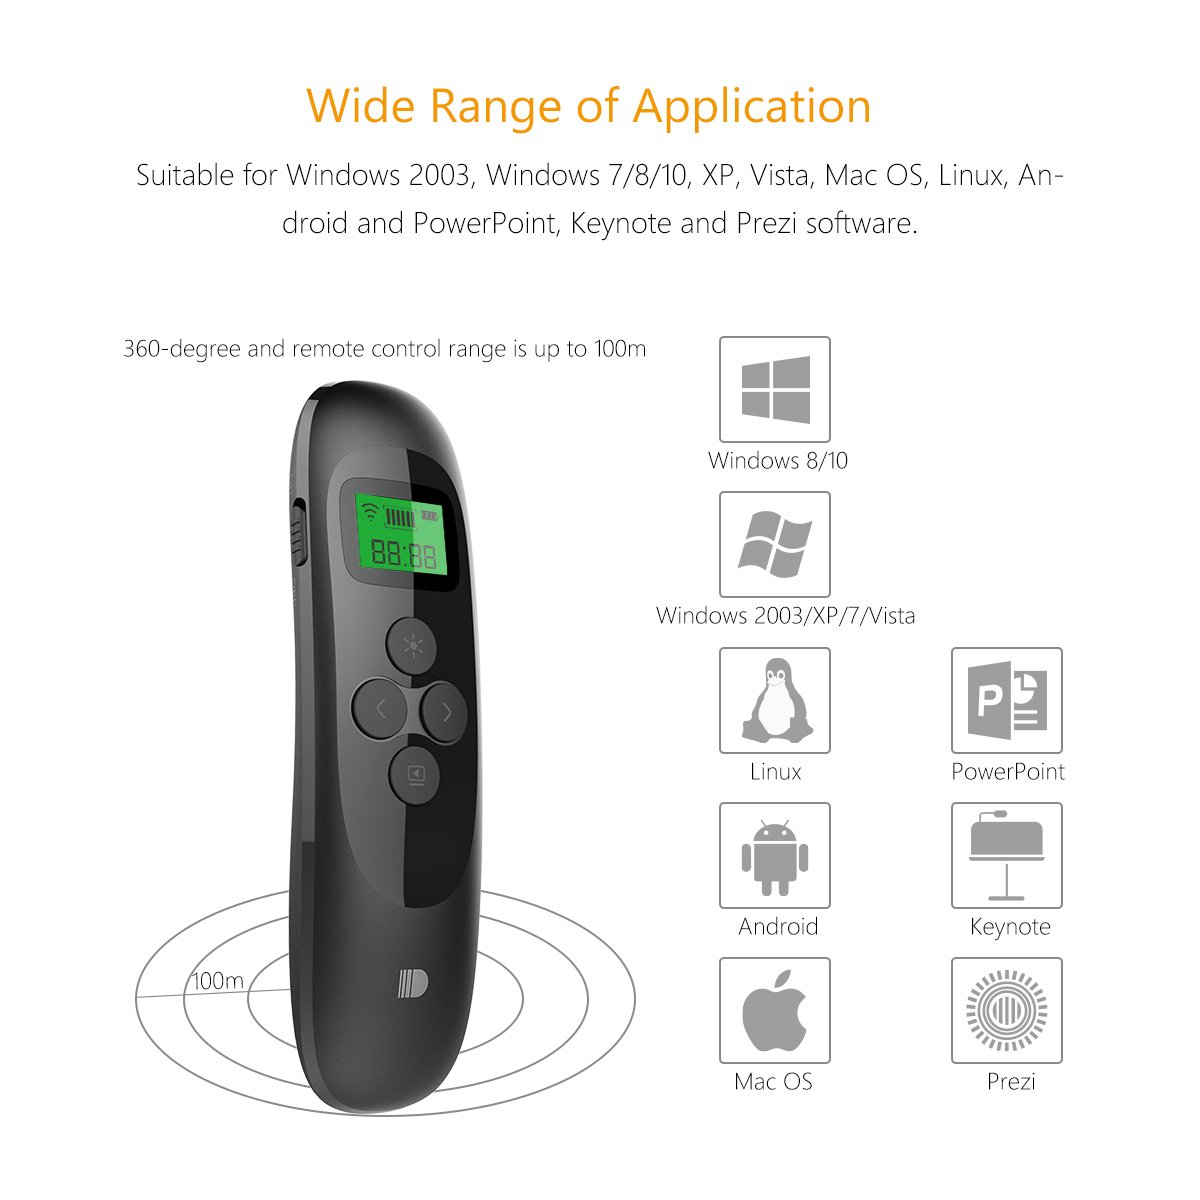 Presentation Remote, Rechargeable Powerpoint Clicker Wireless Presenter with LCD Display Timer, 2.4GHz Wireless PPT Clicker Laser Pointer by Doosl (Image #4)